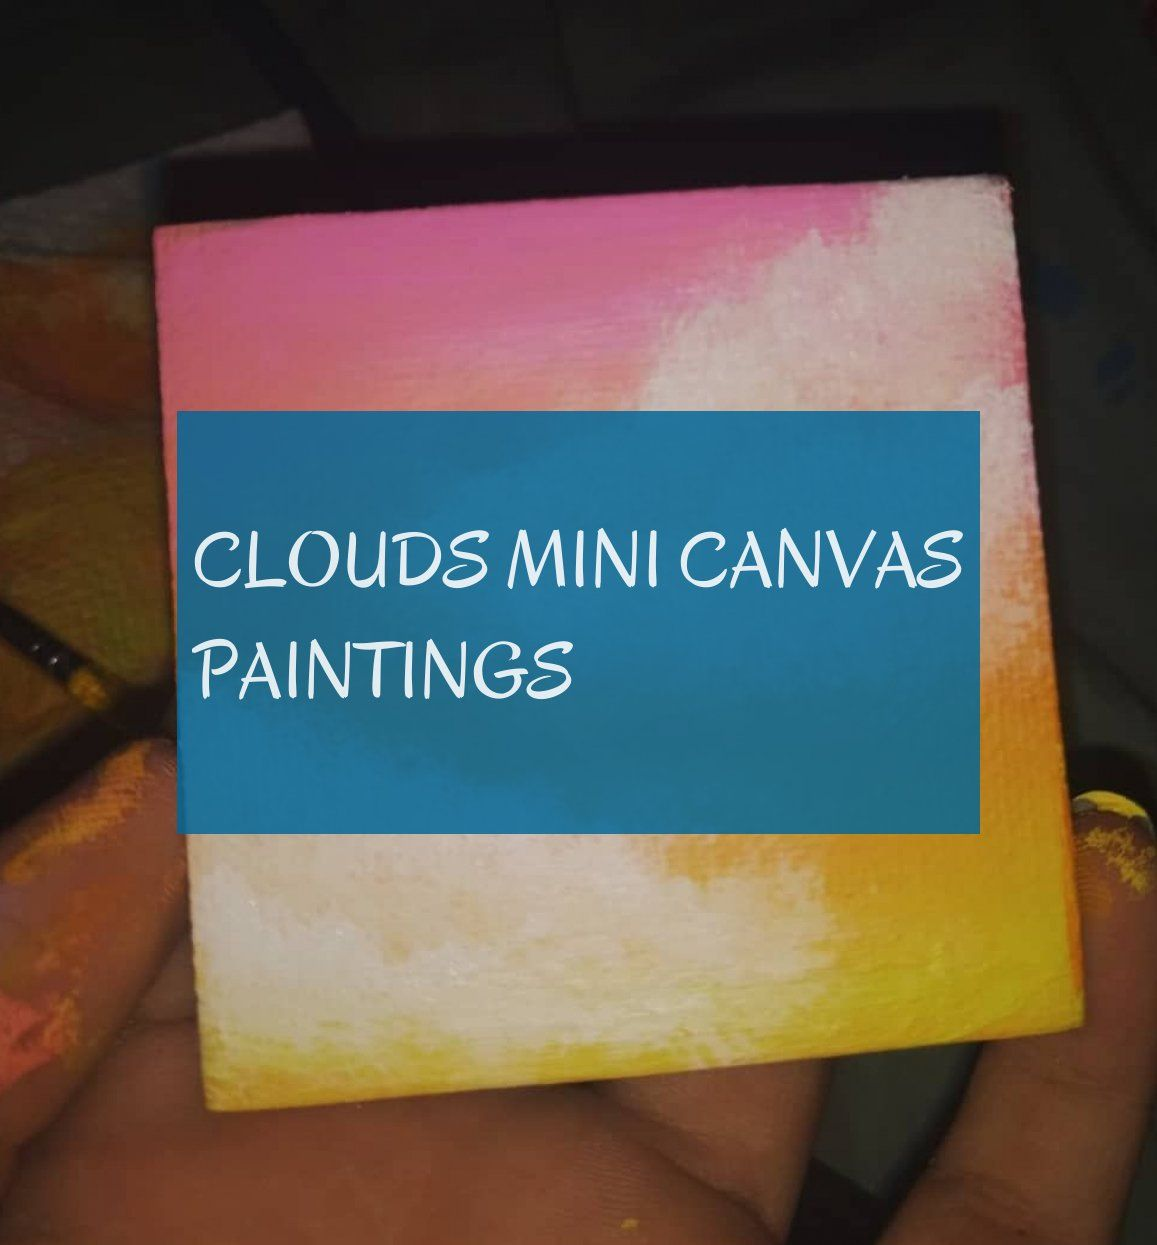 Clouds mini canvas paintings